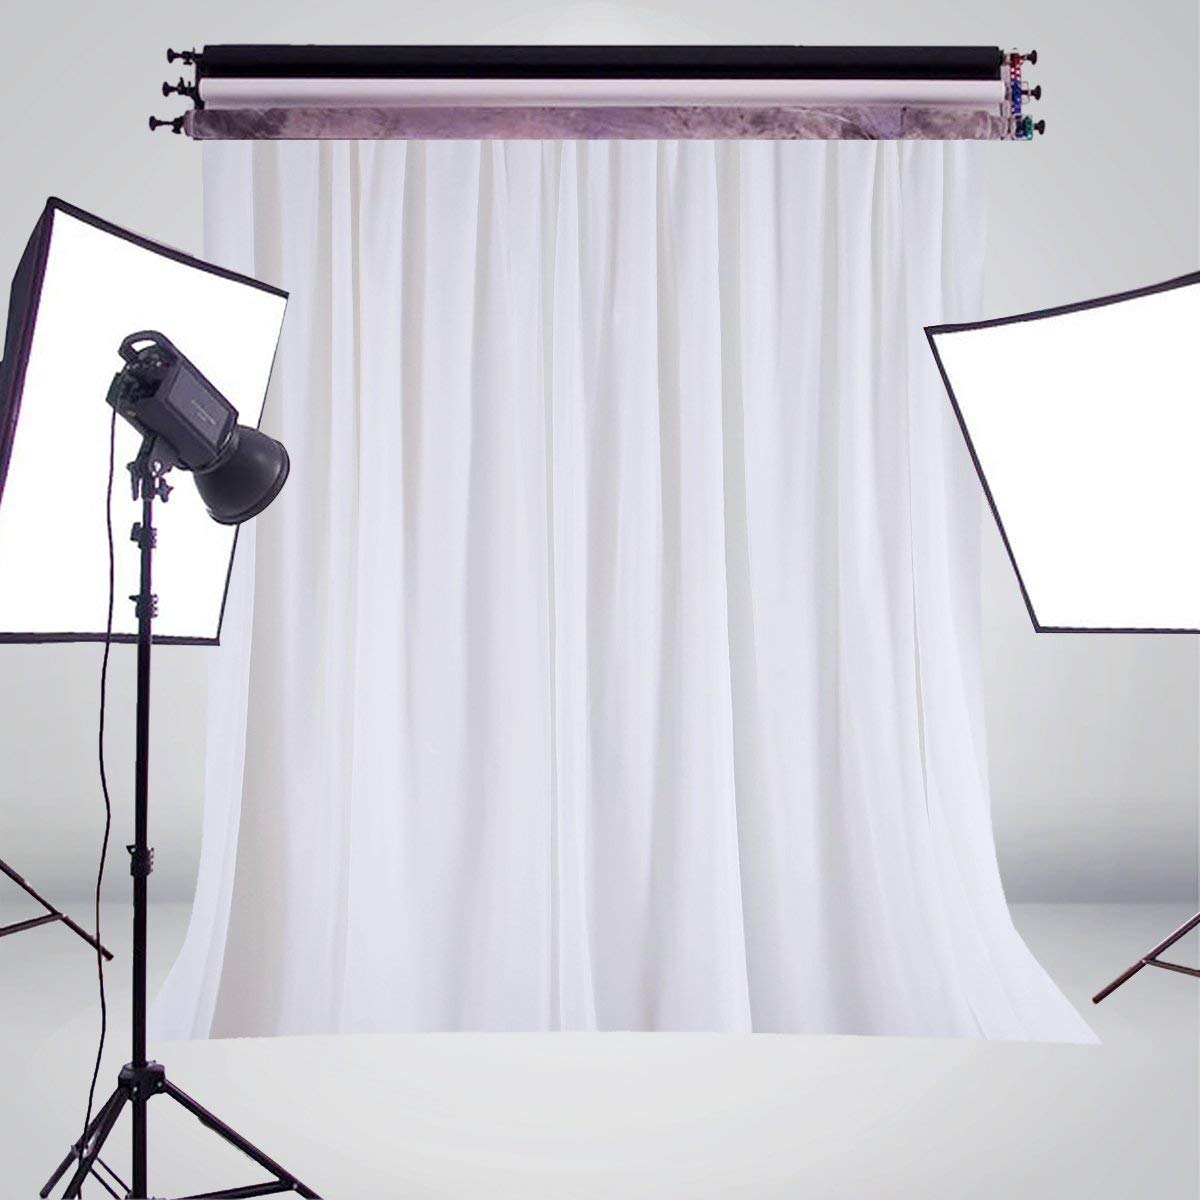 5x7ft White Curtain Photography Backdrop Art Photo Studio Backdrop Holiday background in Photo Studio Accessories from Consumer Electronics